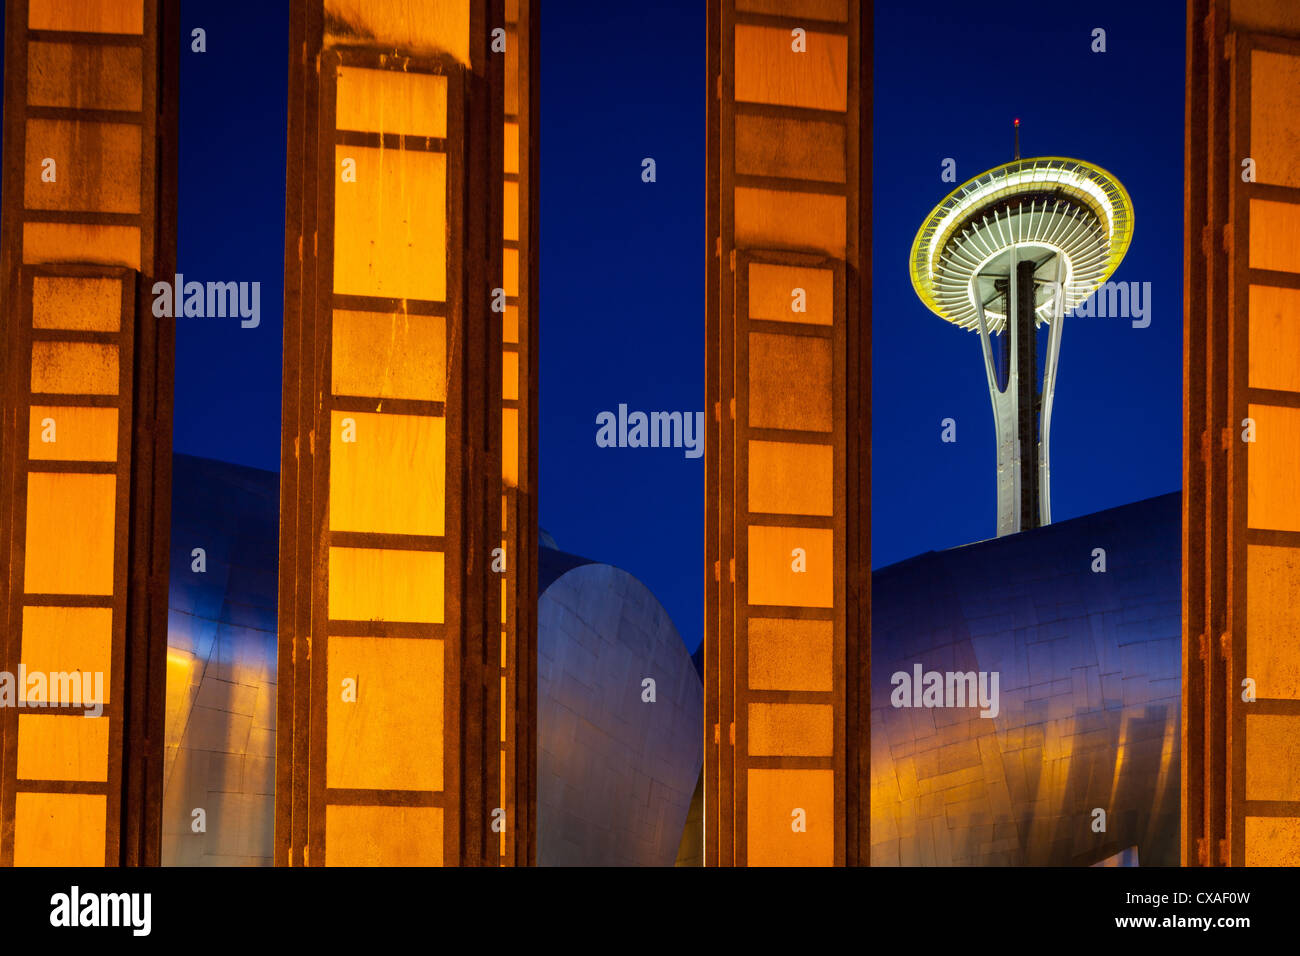 """Seattle Space Needle and """"Bamboo"""" sculpture at Seattle Center. Stock Photo"""